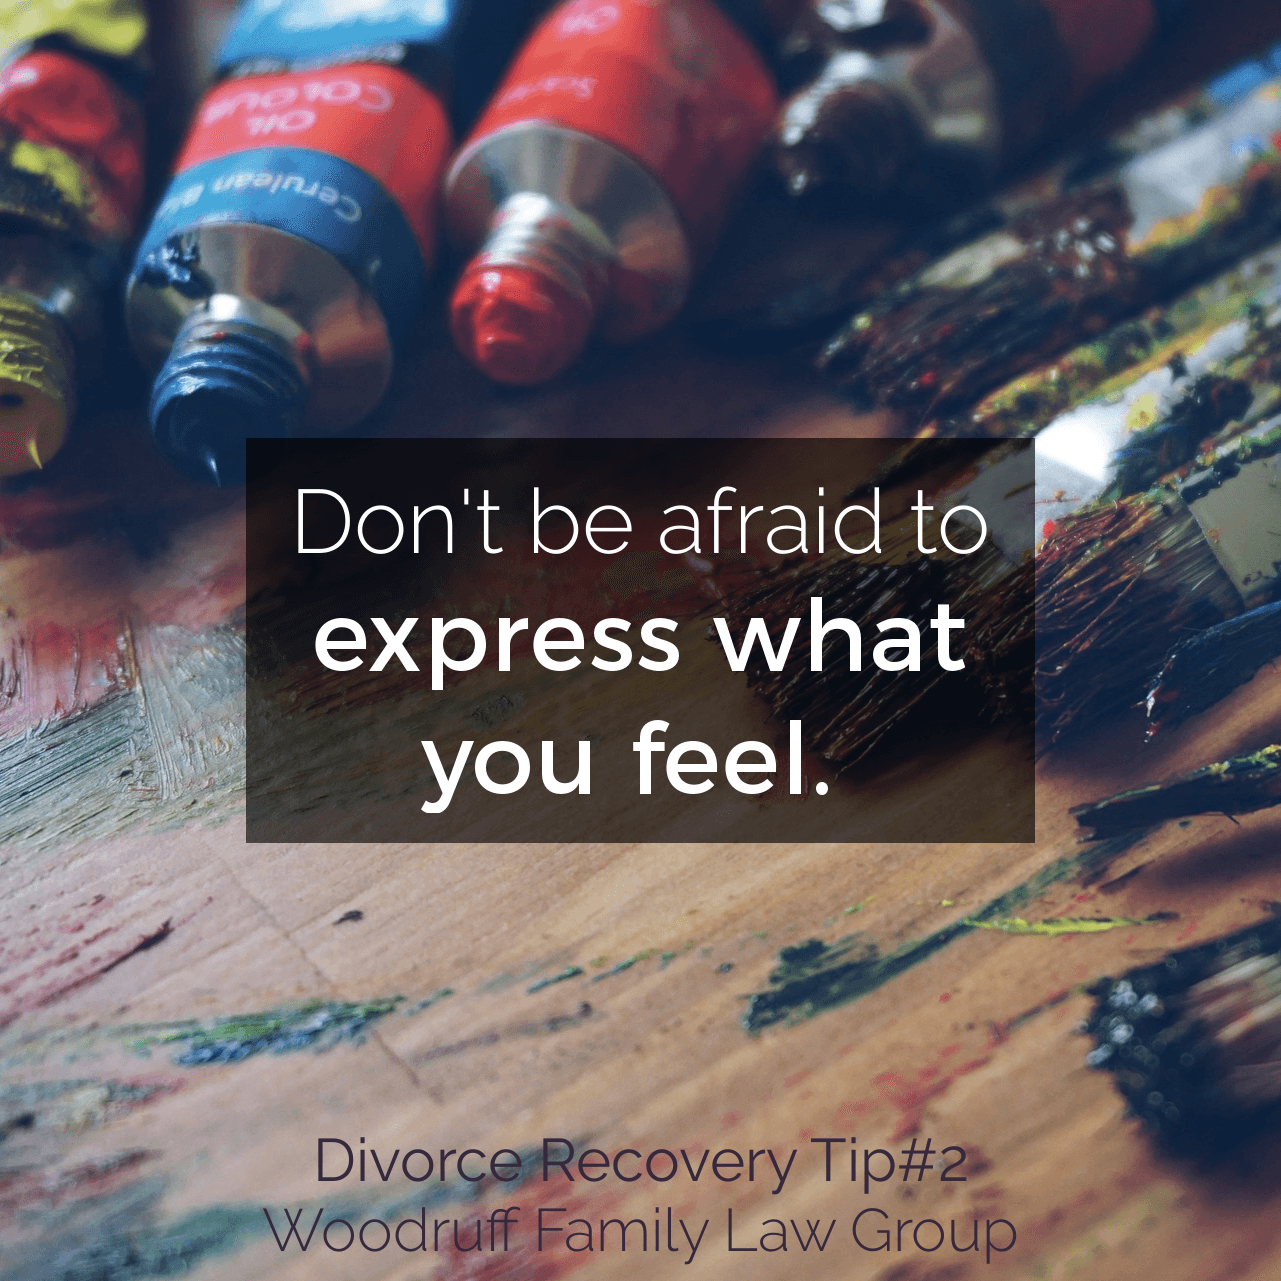 Divorce Recovery Tip 2 - Don't be afraid to express what you feel.